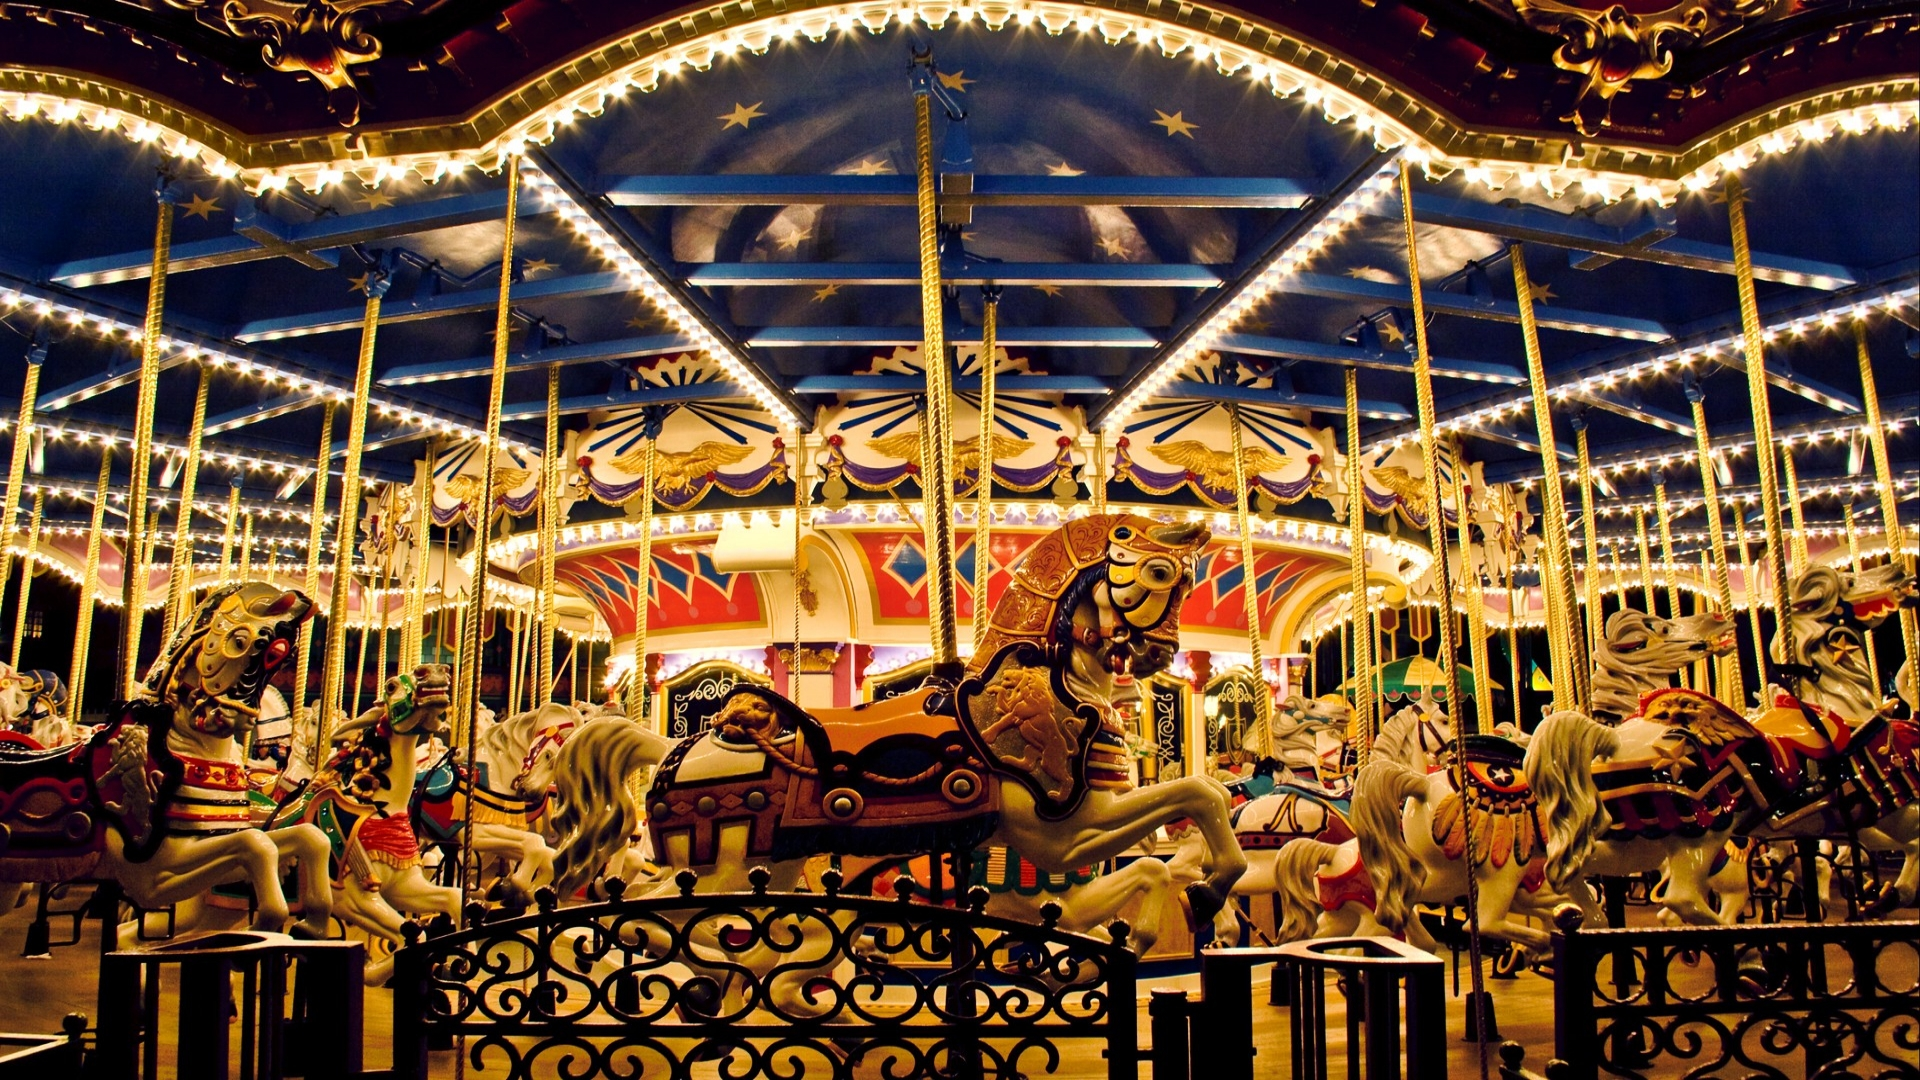 Cool Carousel Wallpaper